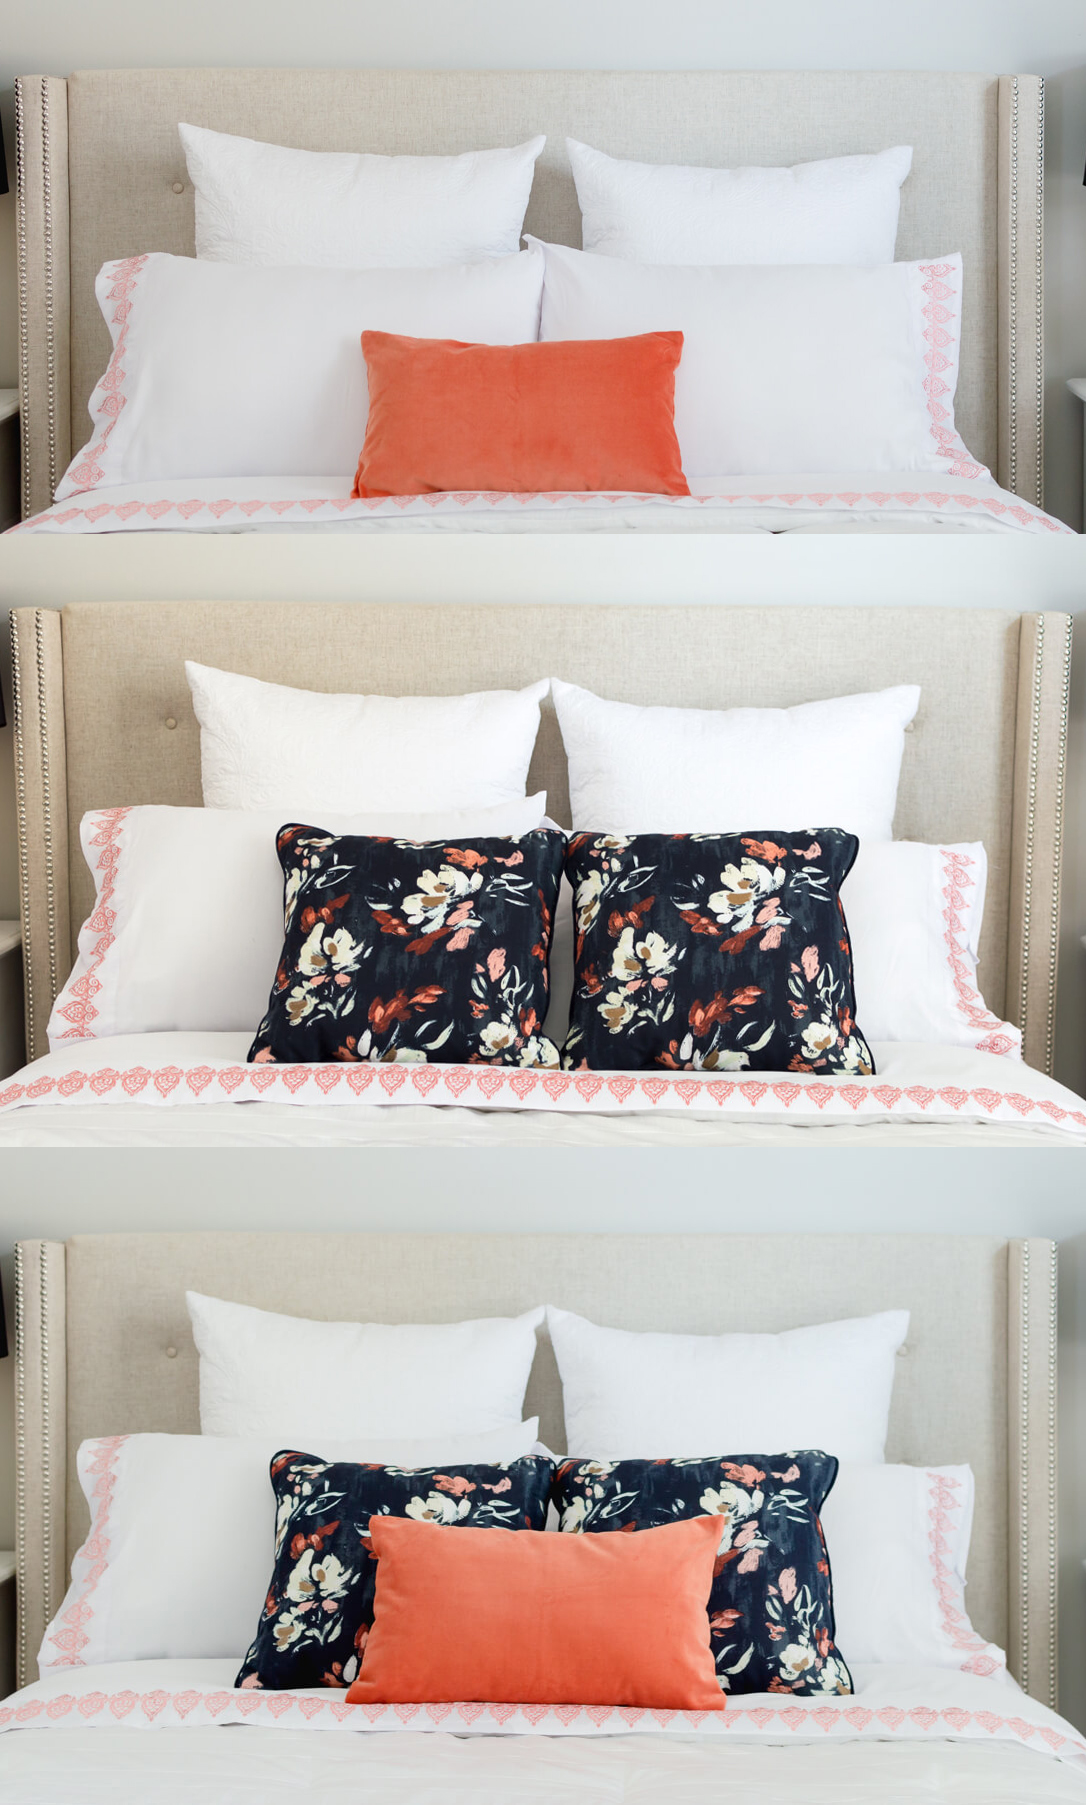 Accent Pillows | Bedroom Pillows | Master Bedroom | Pillow Arrangement |  Thehomeicreate.com